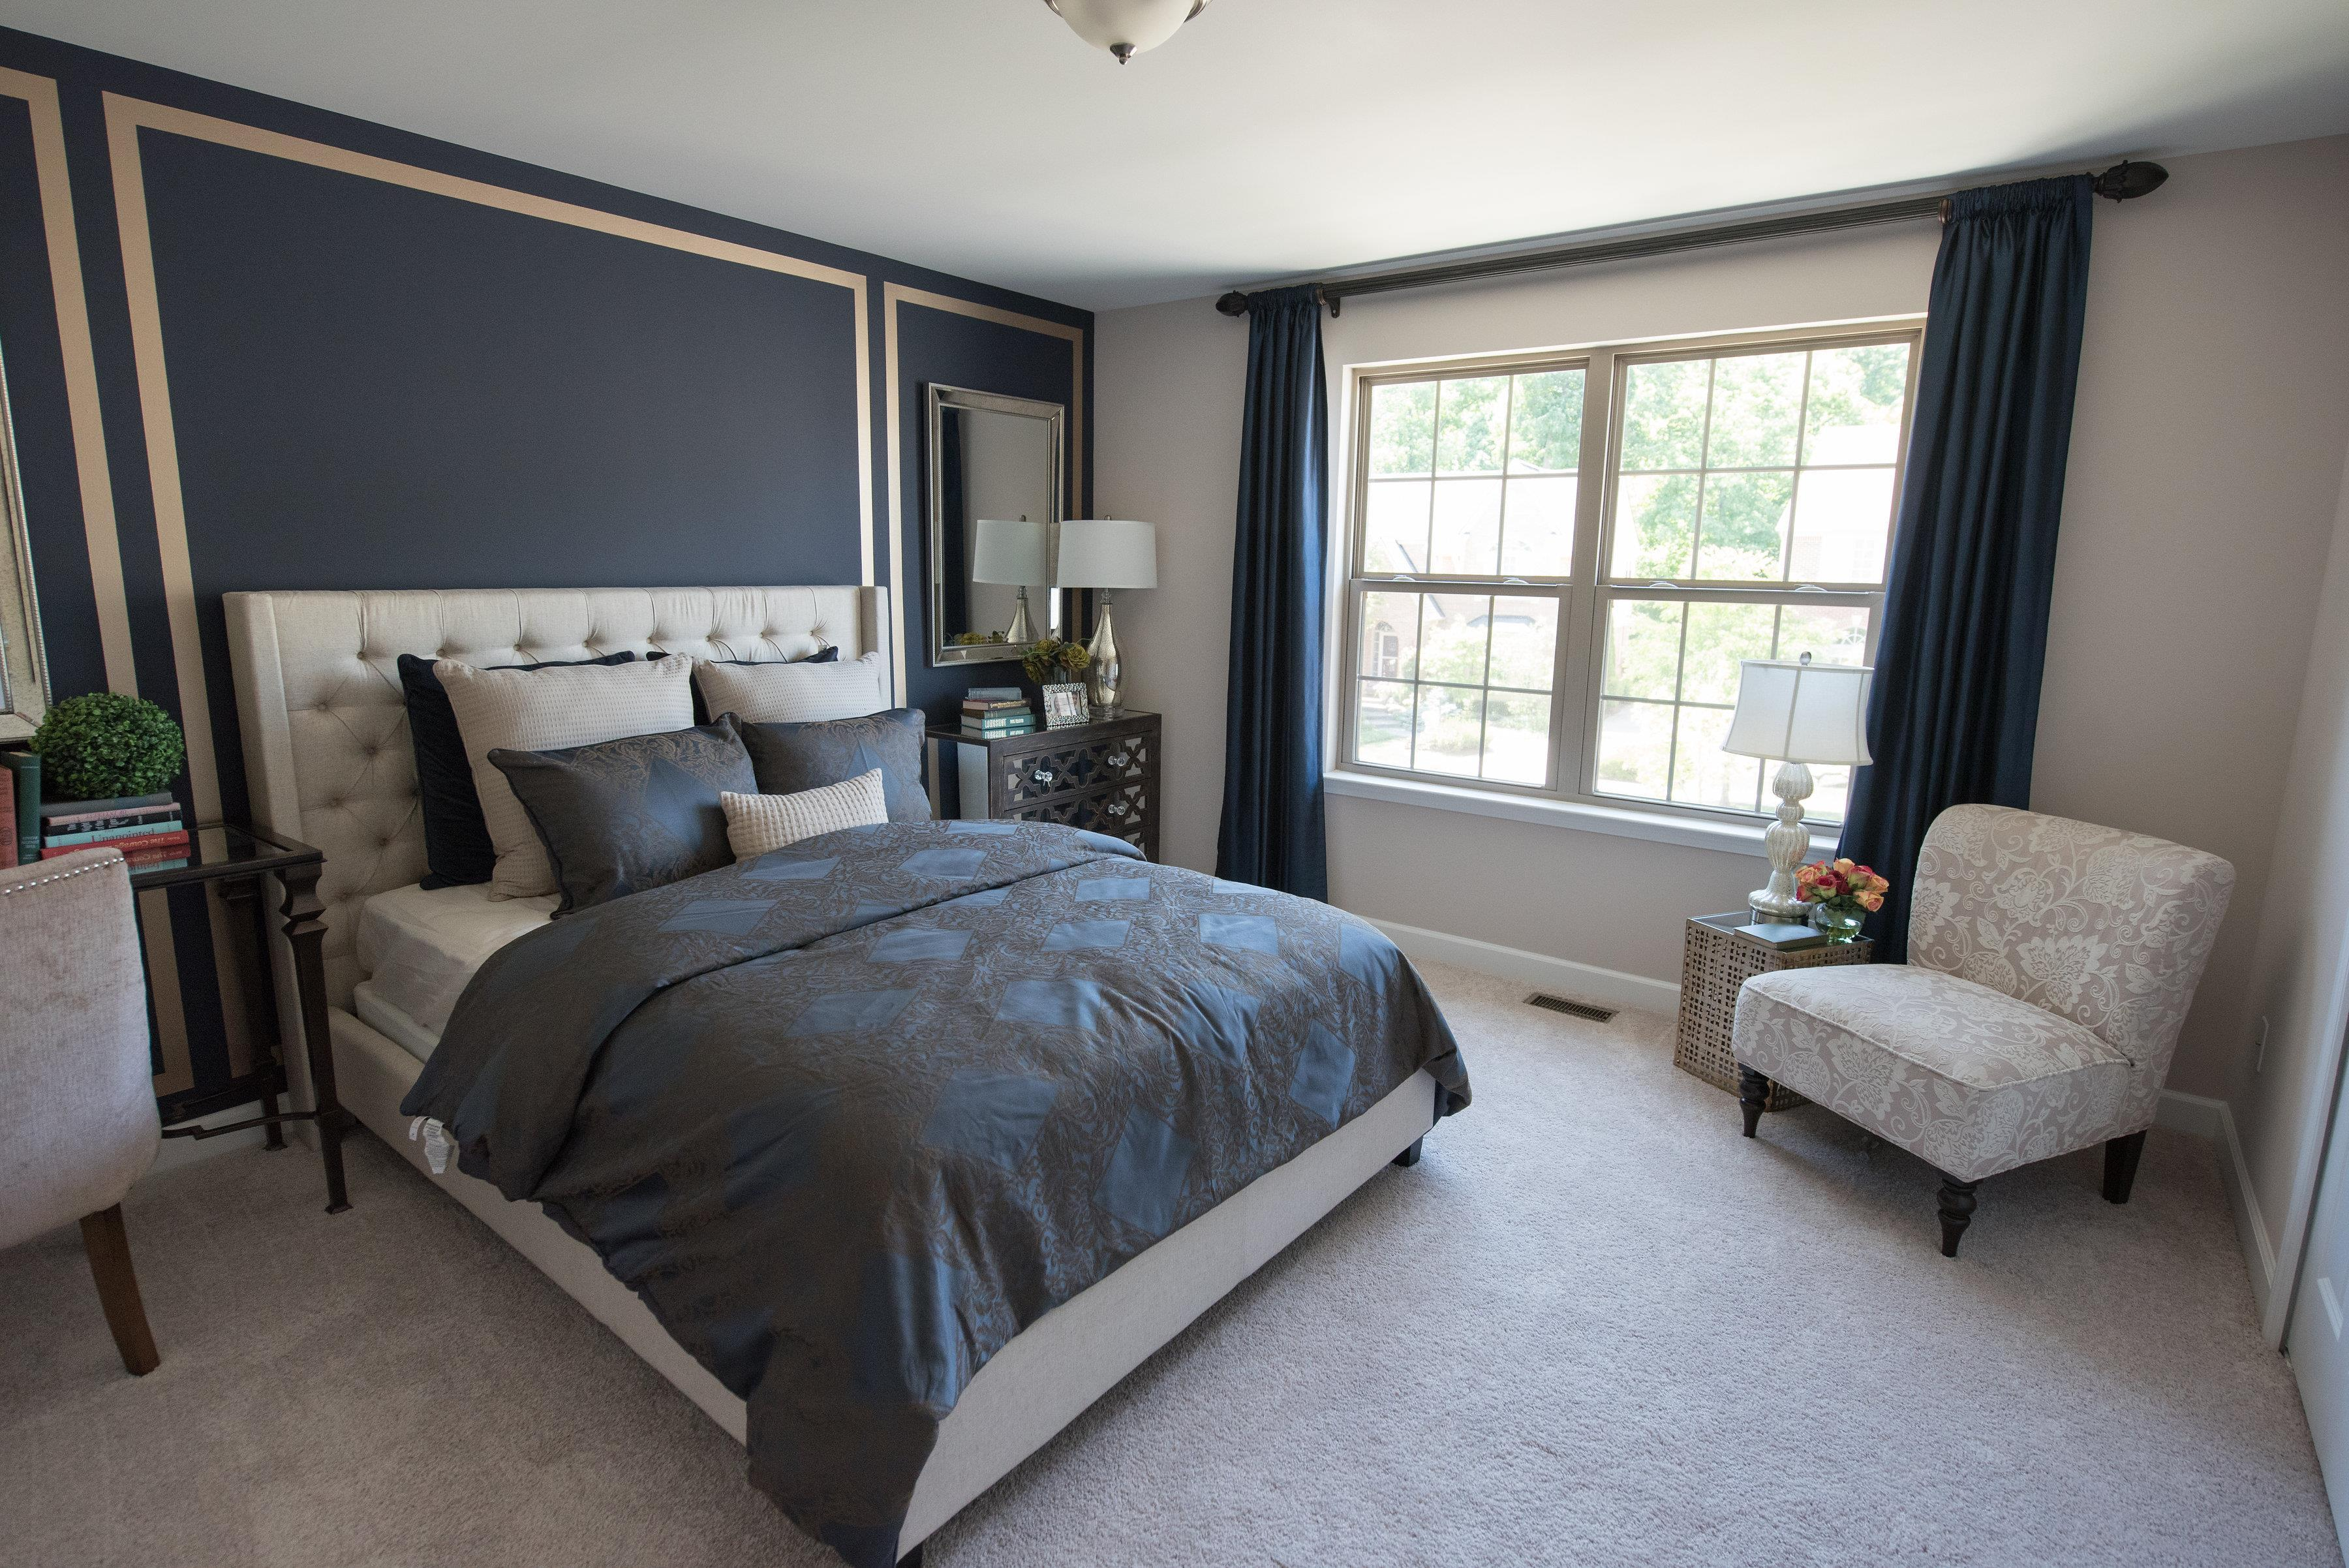 Bedroom featured in the Rockport II  By Singh Homes in Detroit, MI